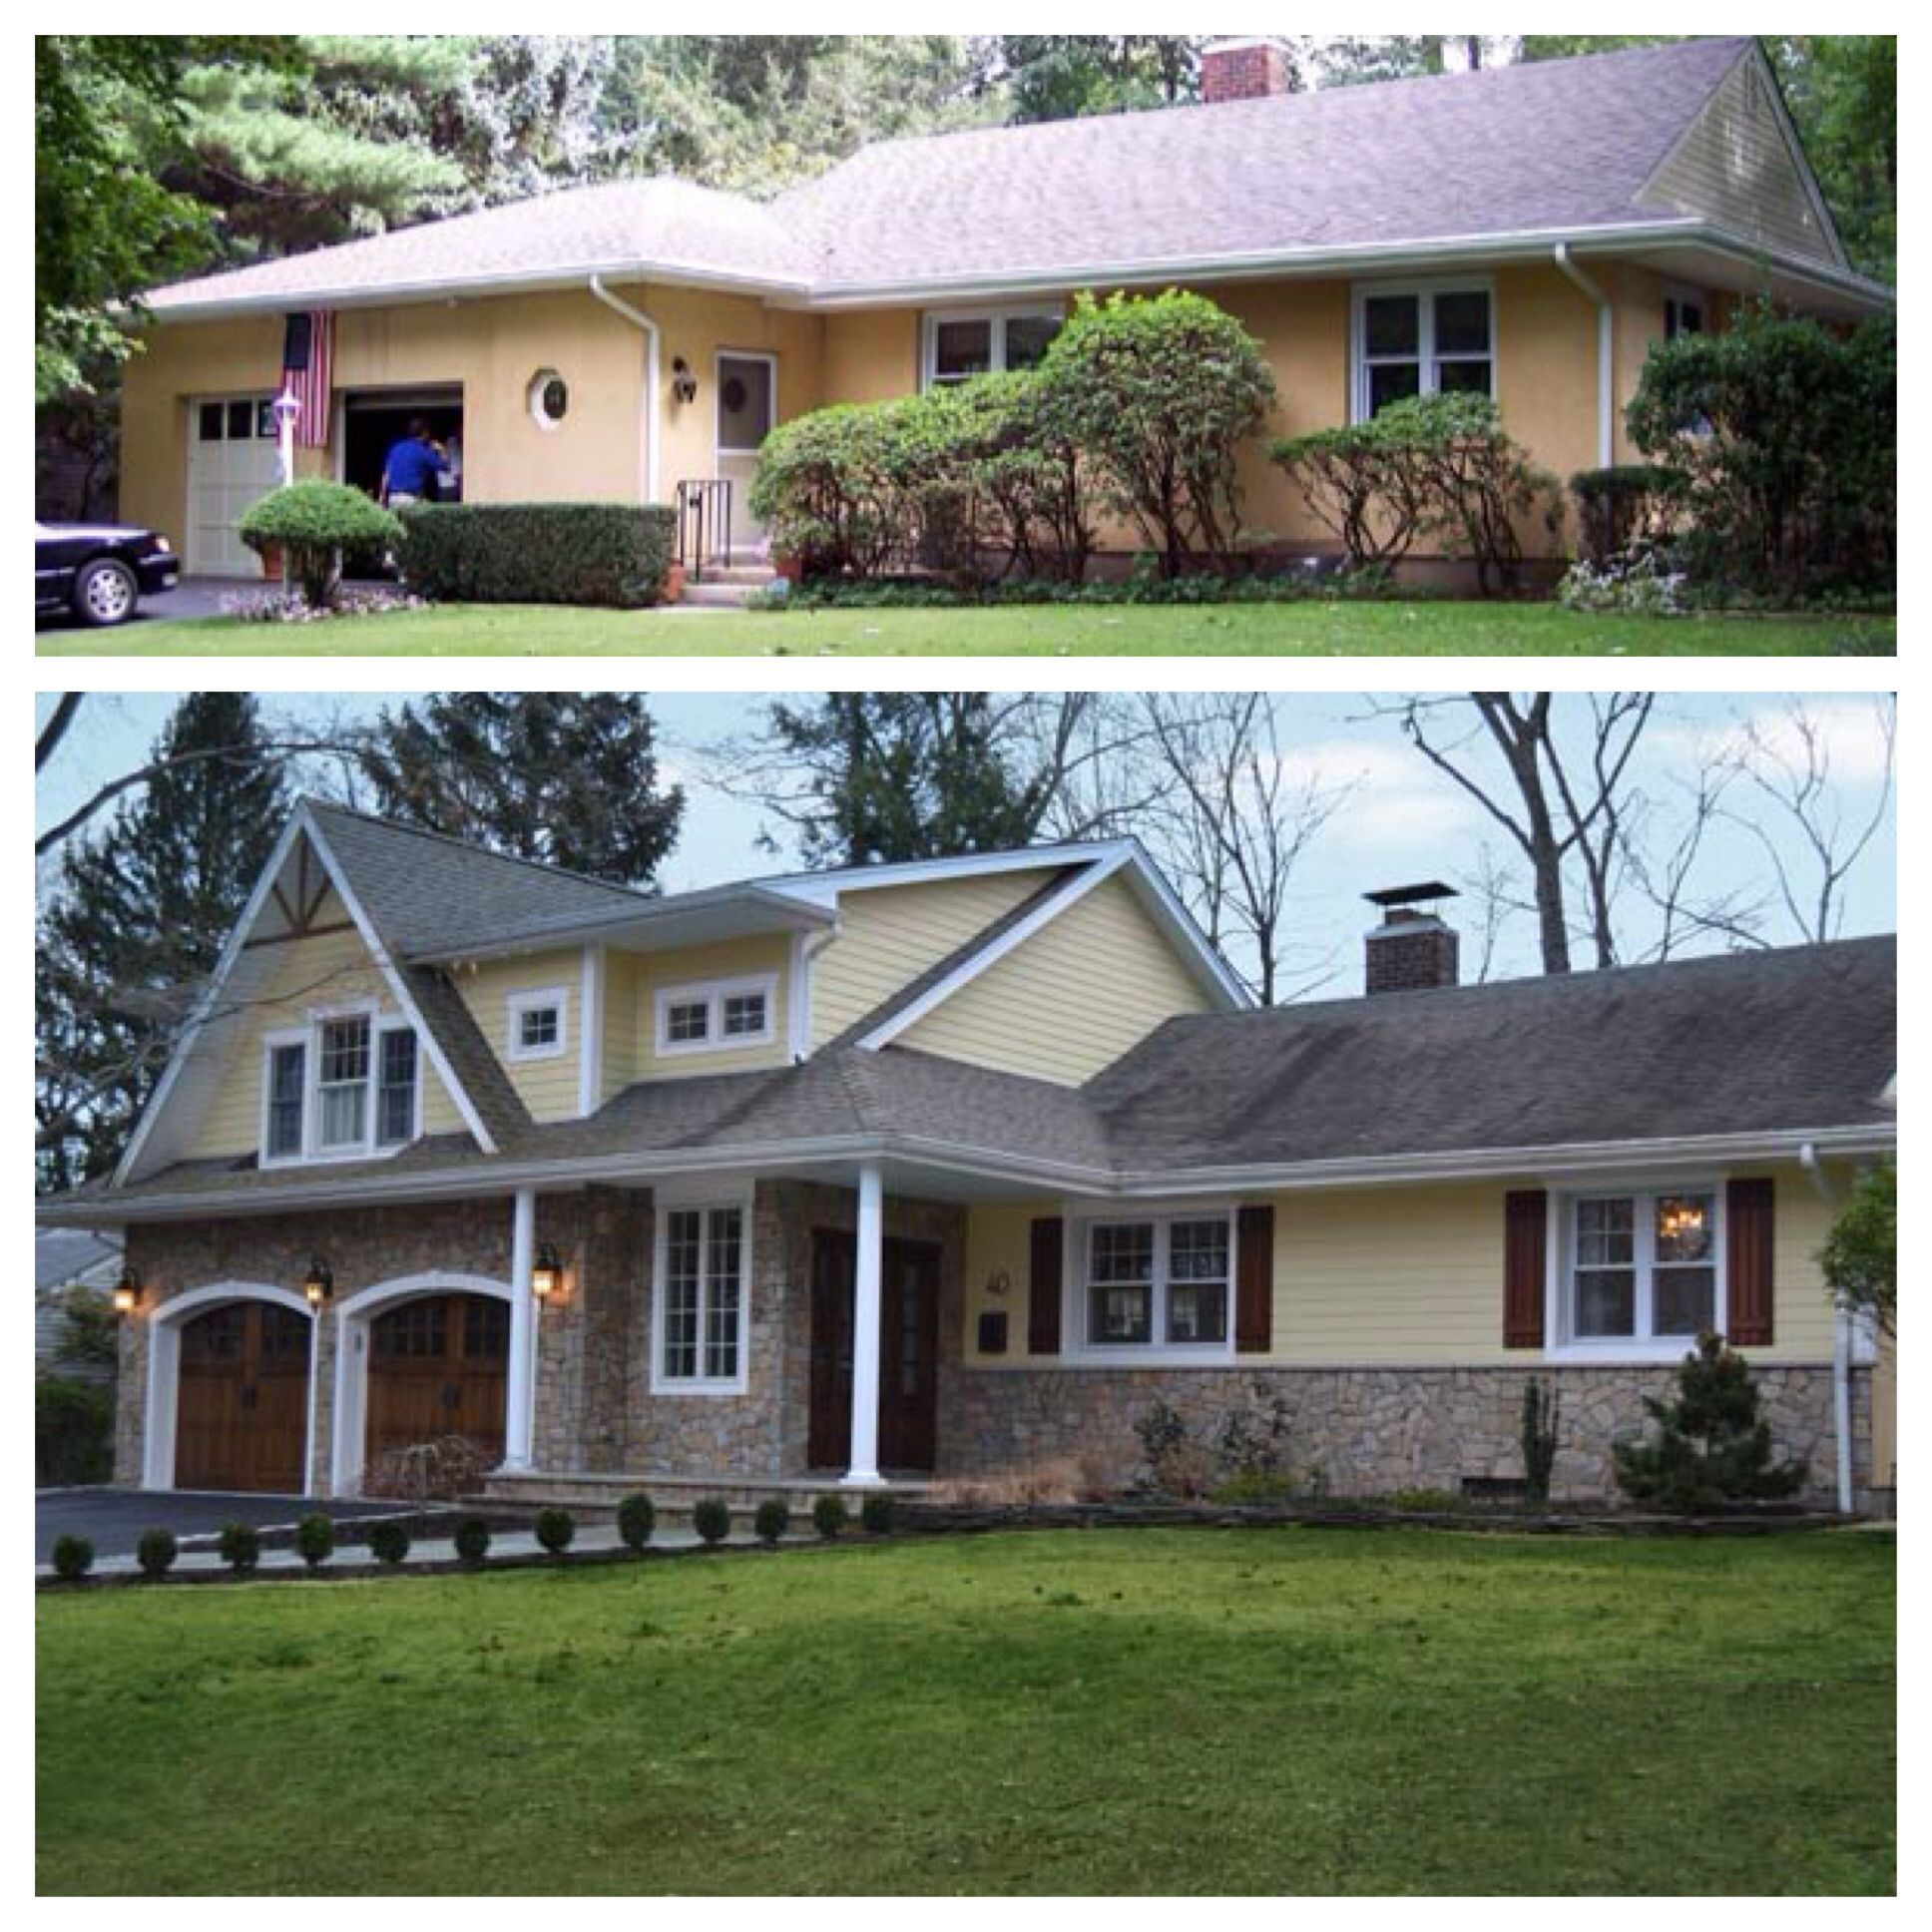 Before And After Curb Appeal. Change Roofline On 1 Level